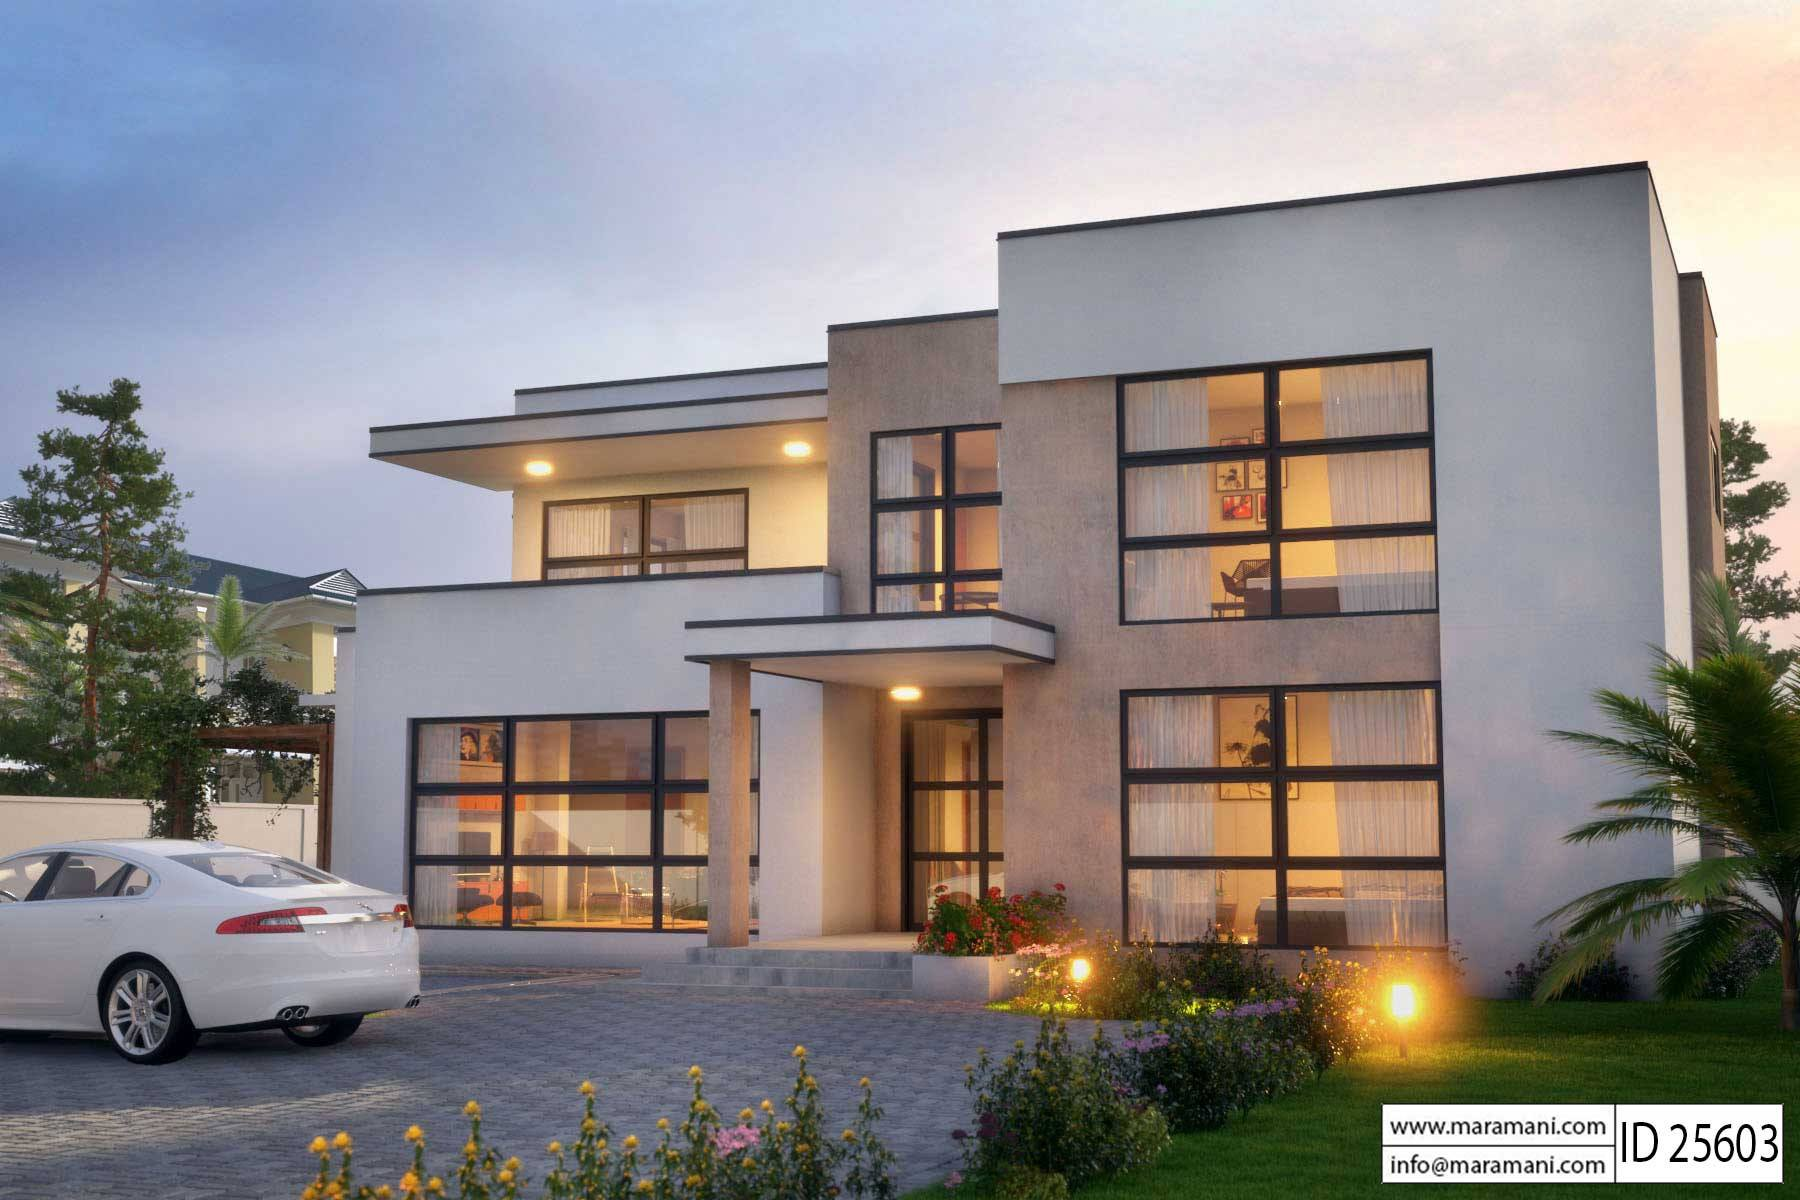 Modern 5 bedroom house design id 25603 floor plans by for 5 bedroom house designs